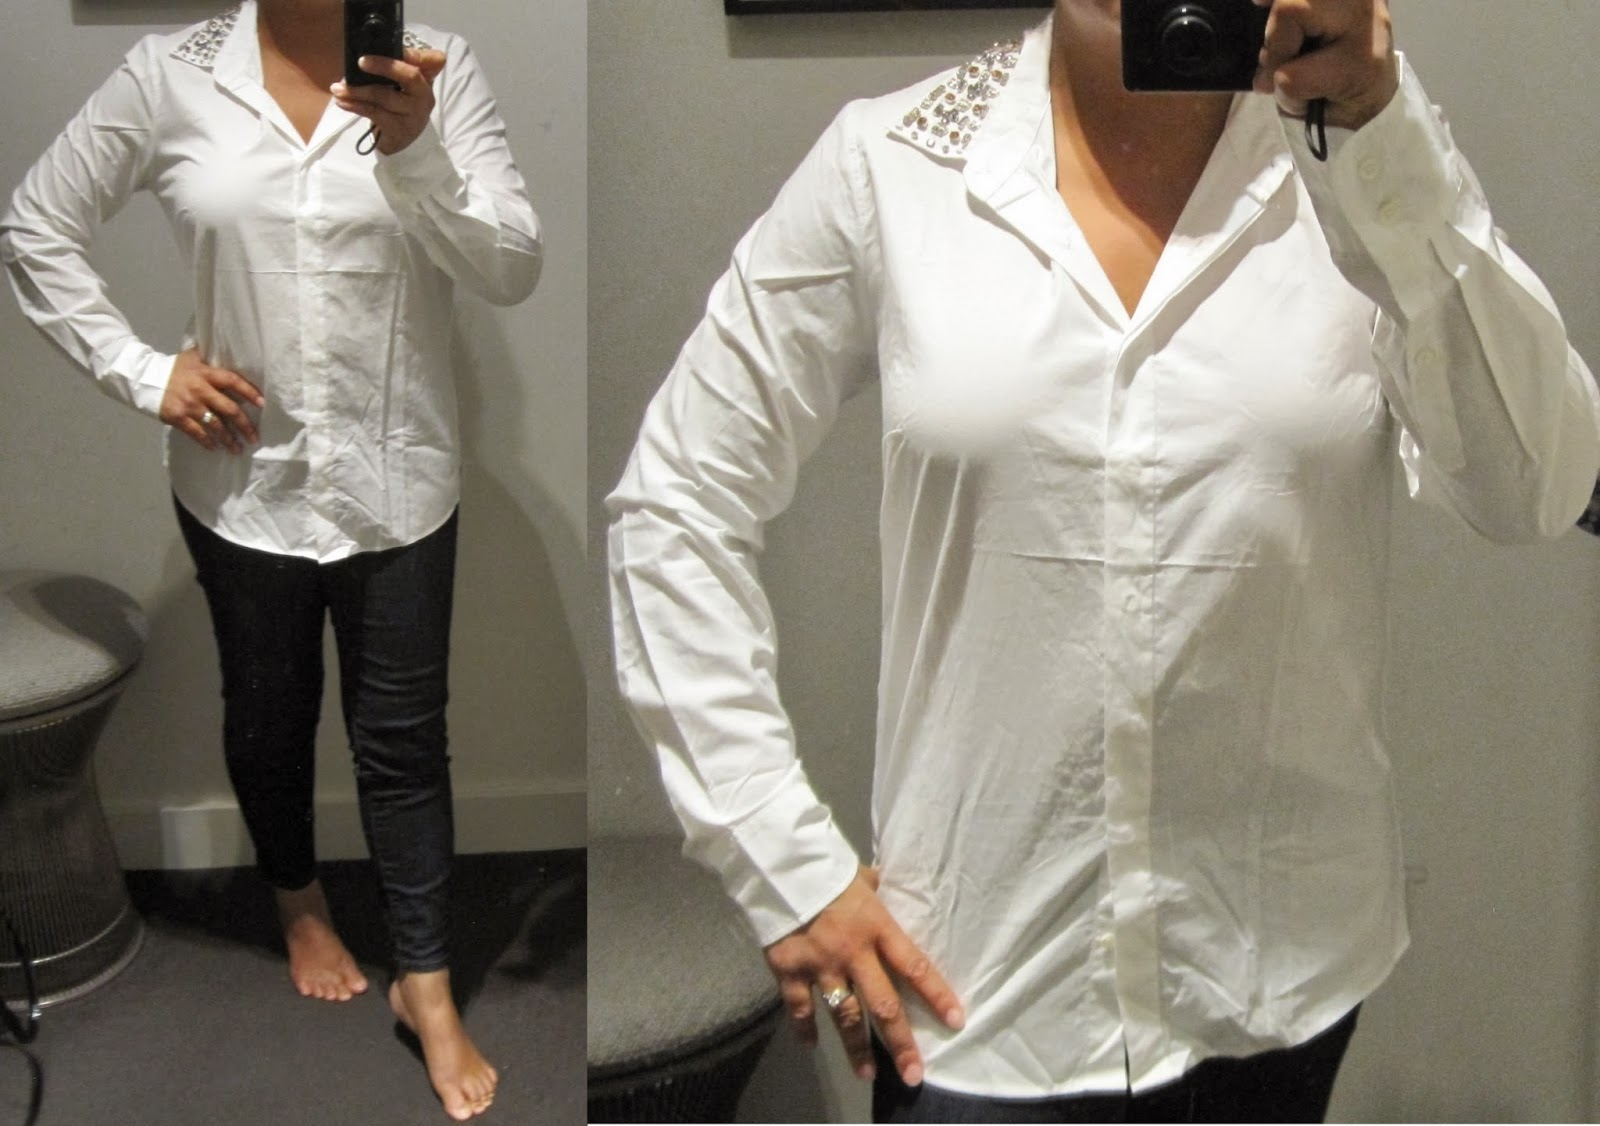 33547ca0 ... but I wouldn't size down. If you're thin and have a smaller chest  there's a chance you might want to size down one. Note that it's a boy  blouse.